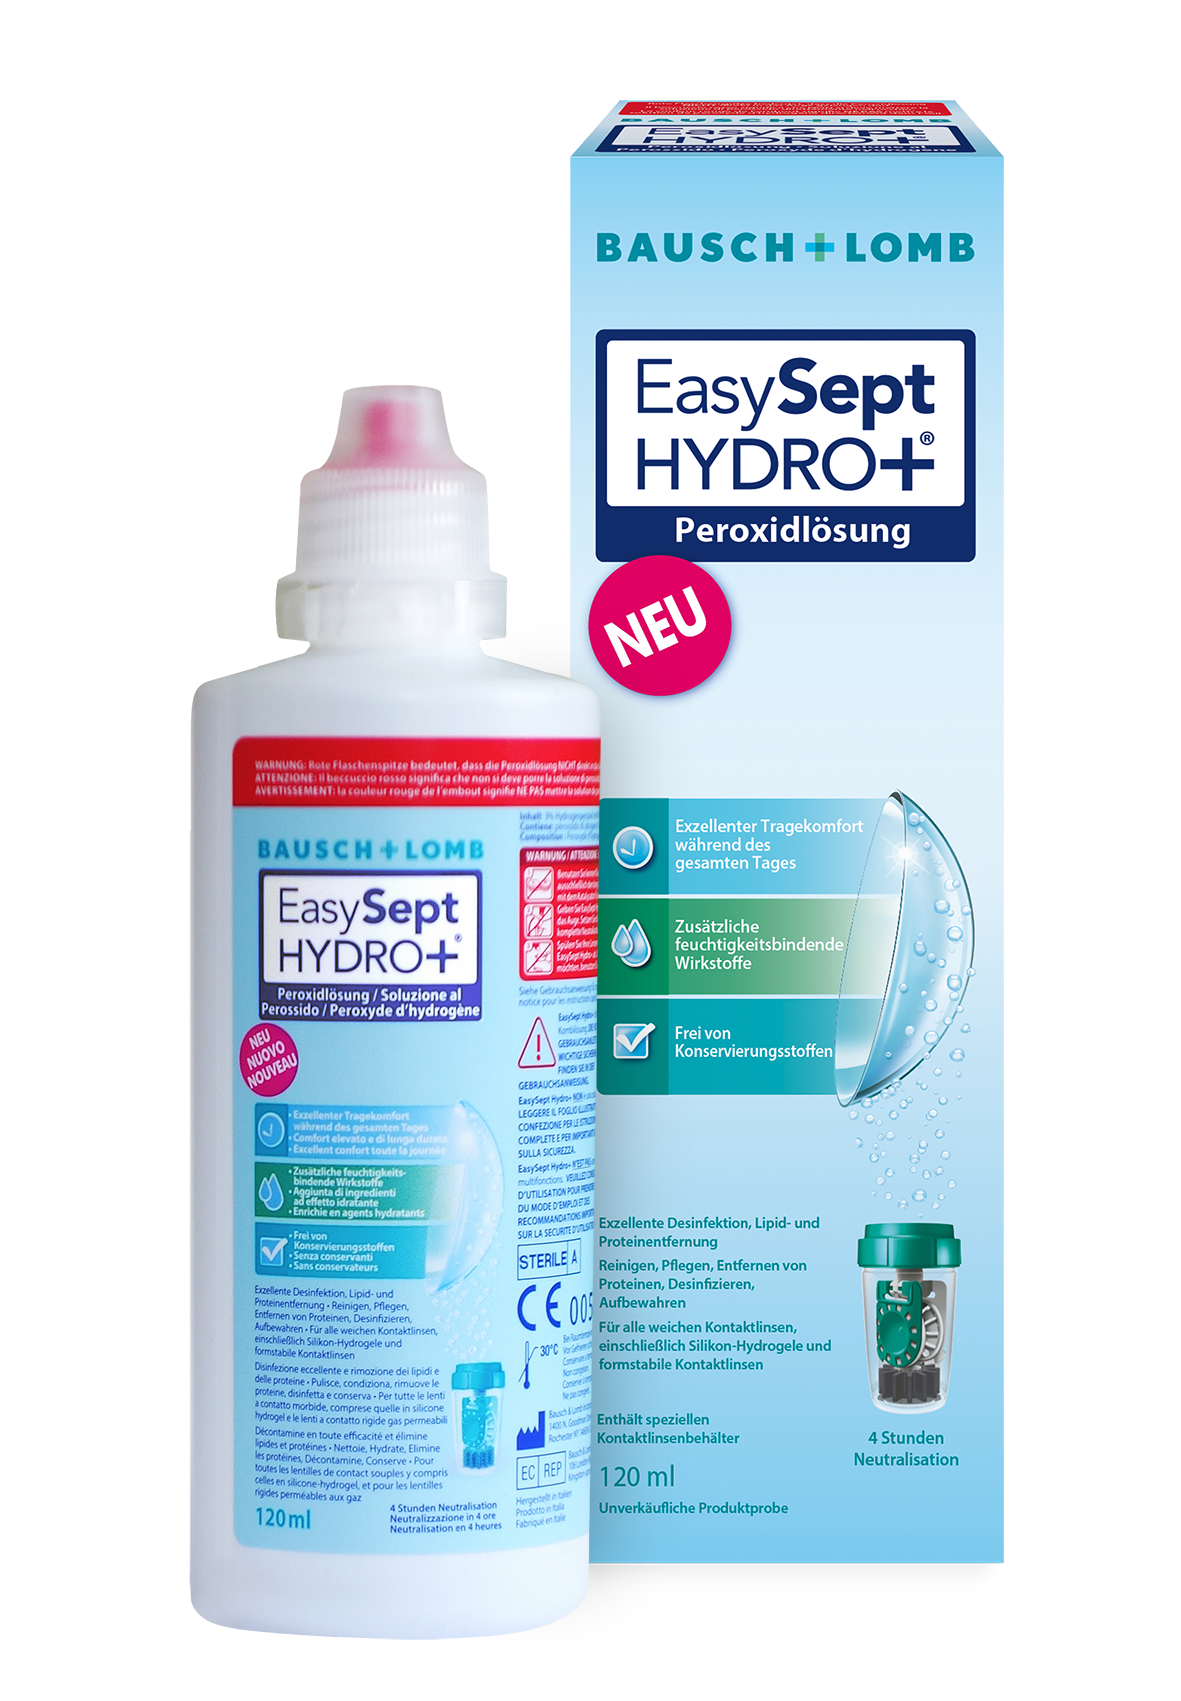 EasySept Hydro Plus Bausch Lomb